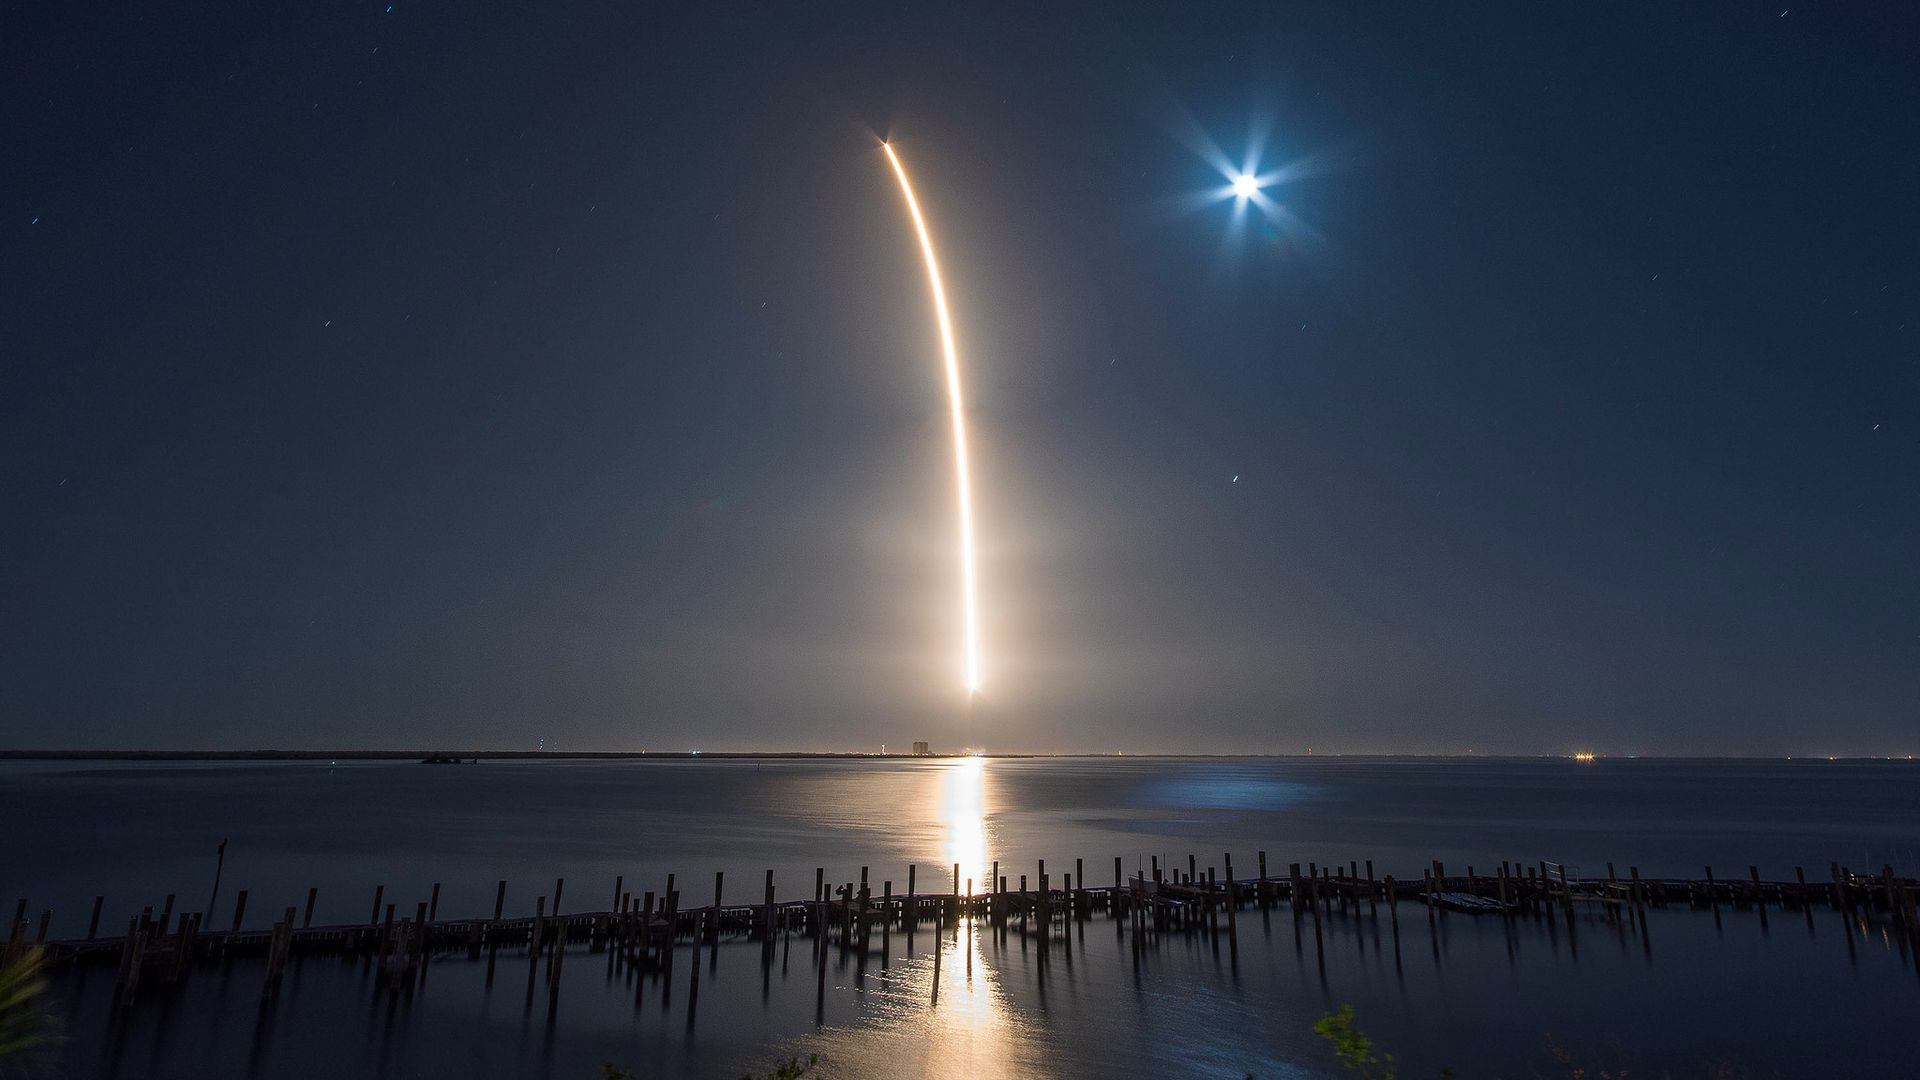 SpaceX nighttime launch on March 6, 2018.